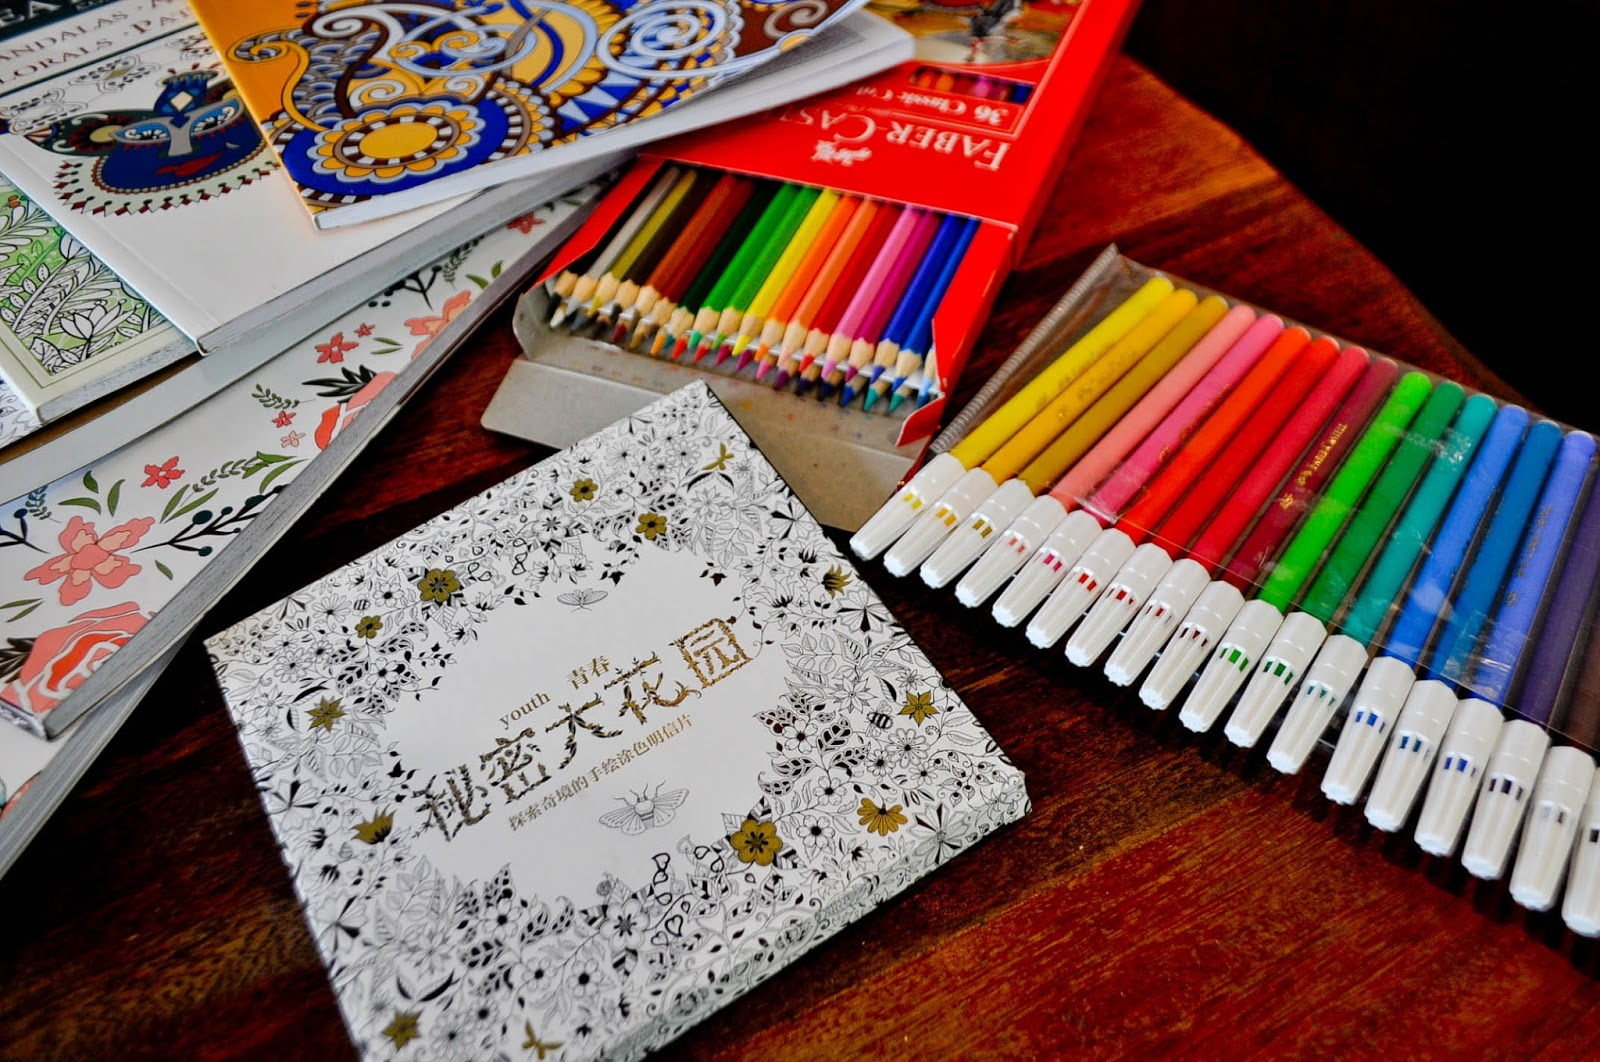 Adult Coloring Pastime Has Been On For A Couple Of Months Now And In The Beginning I Didnt Want To Go With Trend Why Simple Because First Books